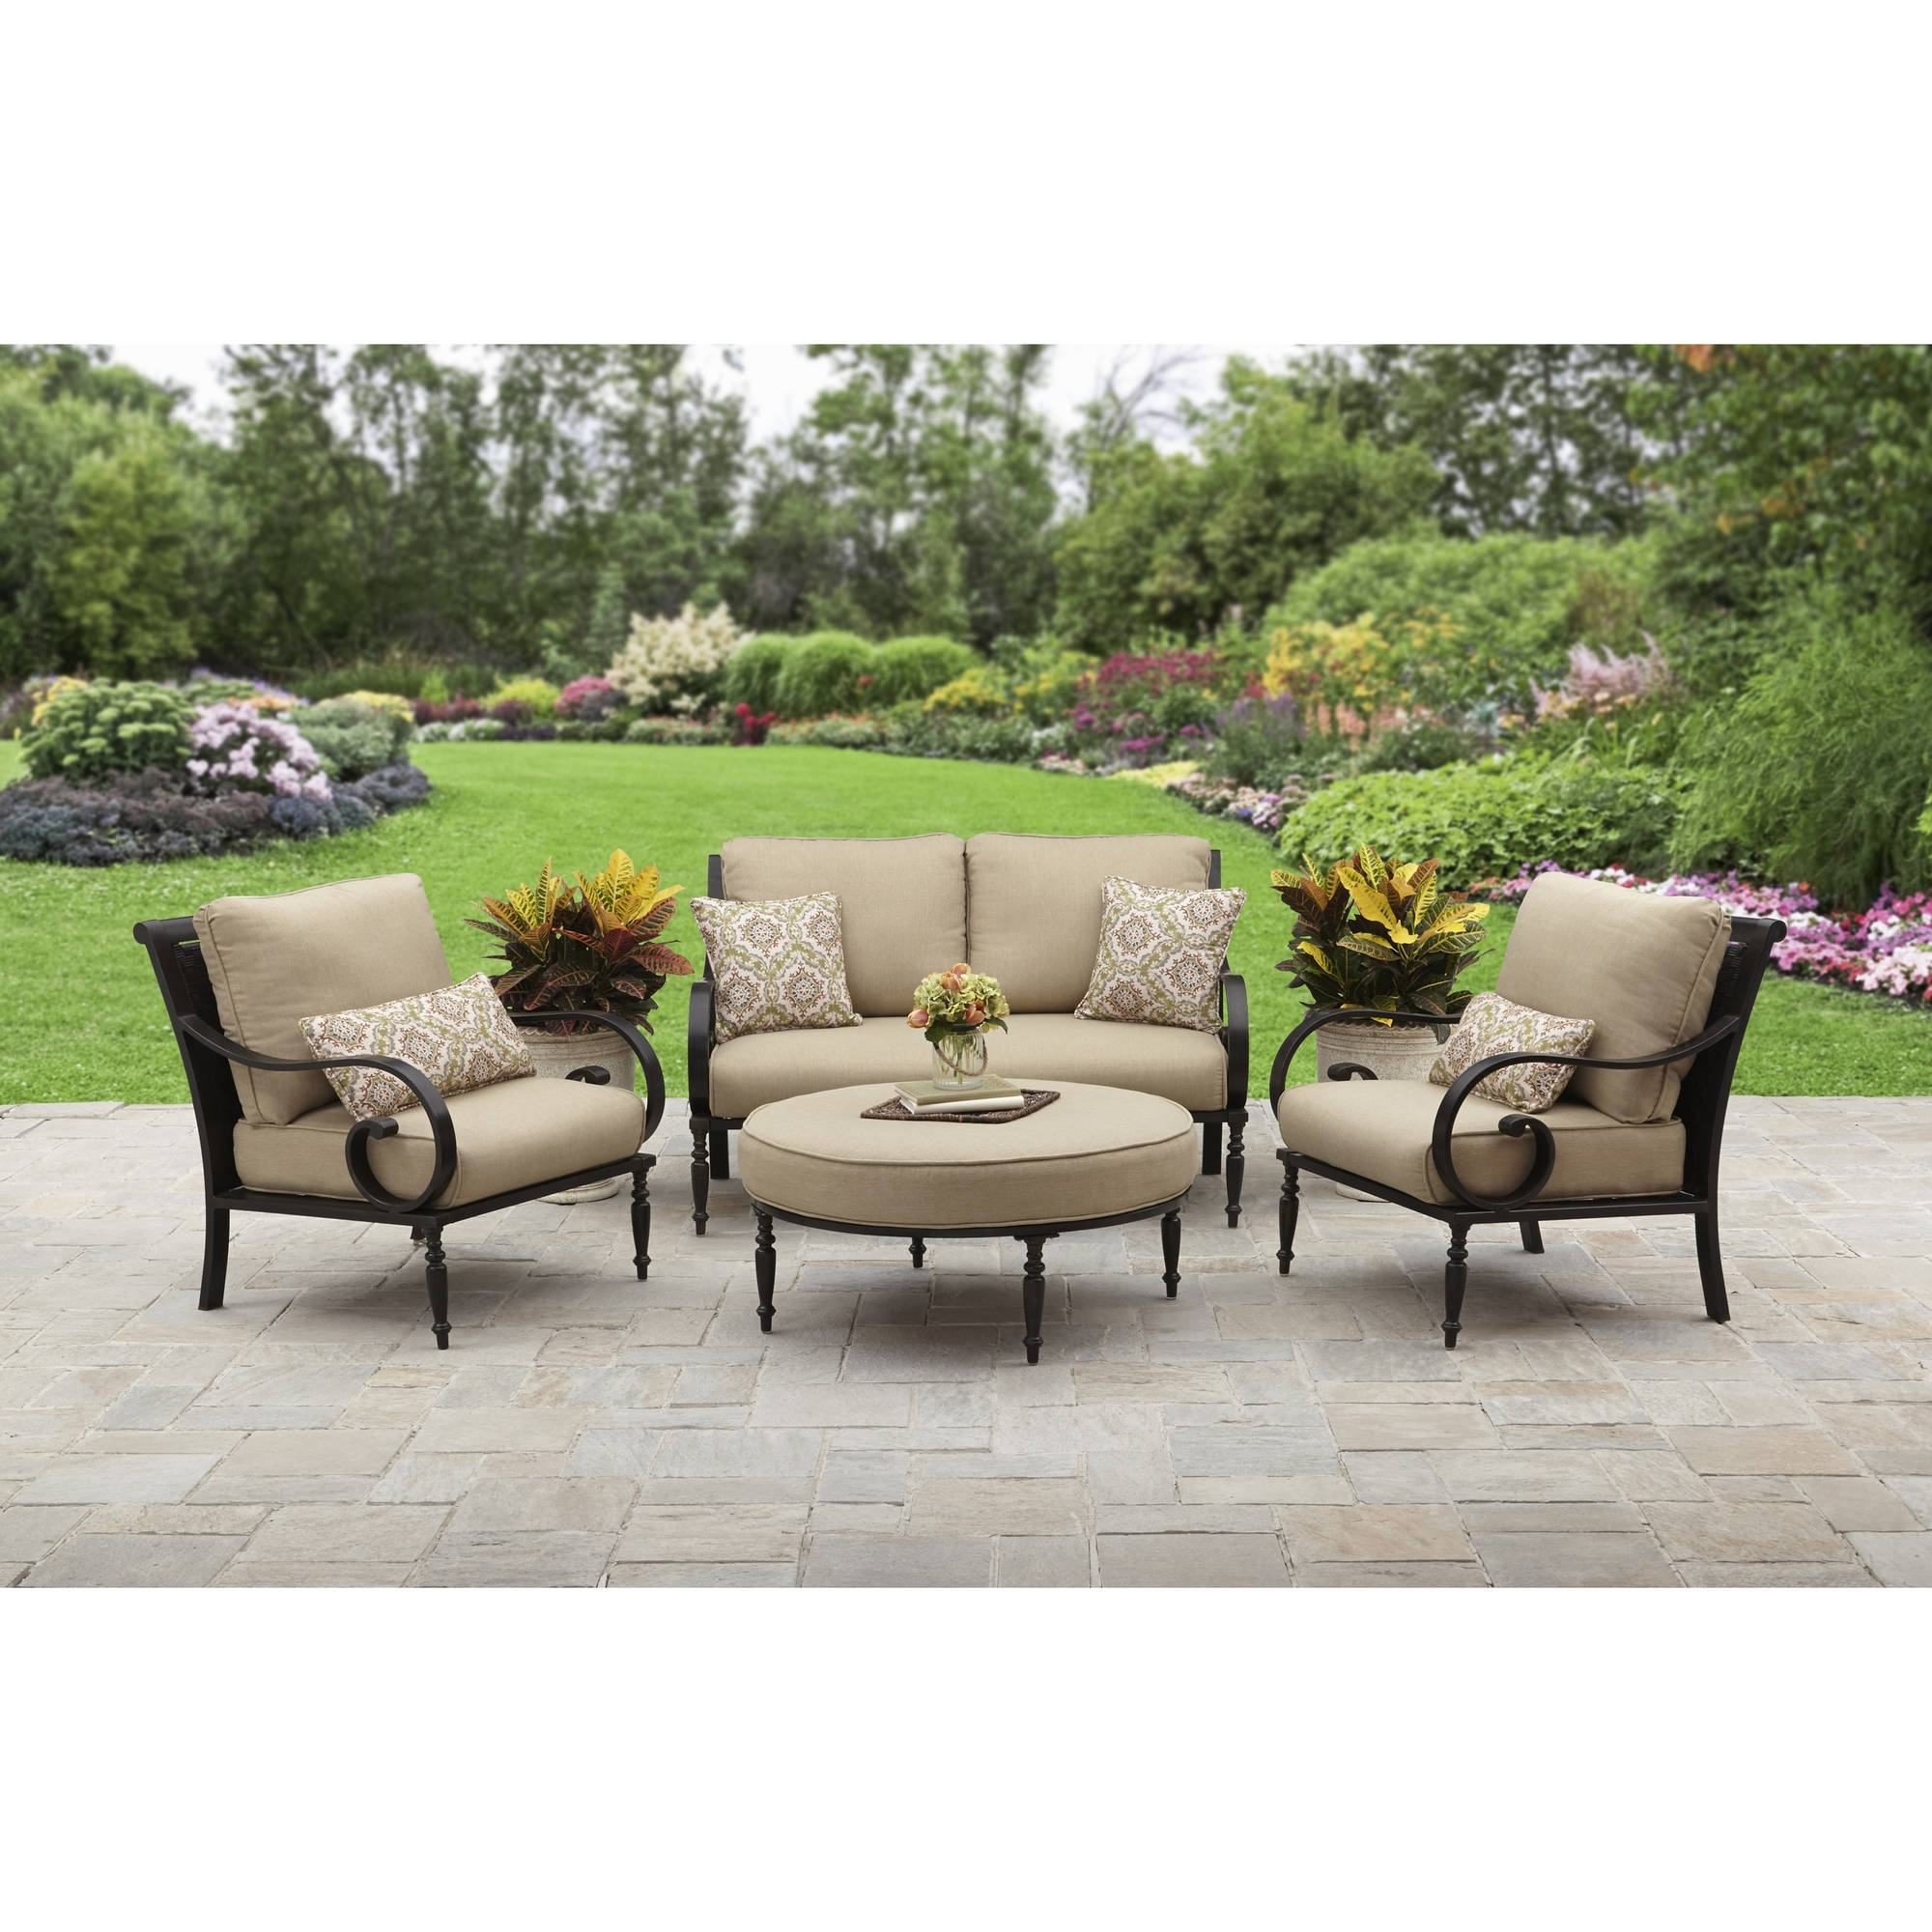 Better Homes And Gardens Englewood Heights Ii Aluminum 4 Piece Regarding Most Current Dot Patio Conversation Sets (View 4 of 15)